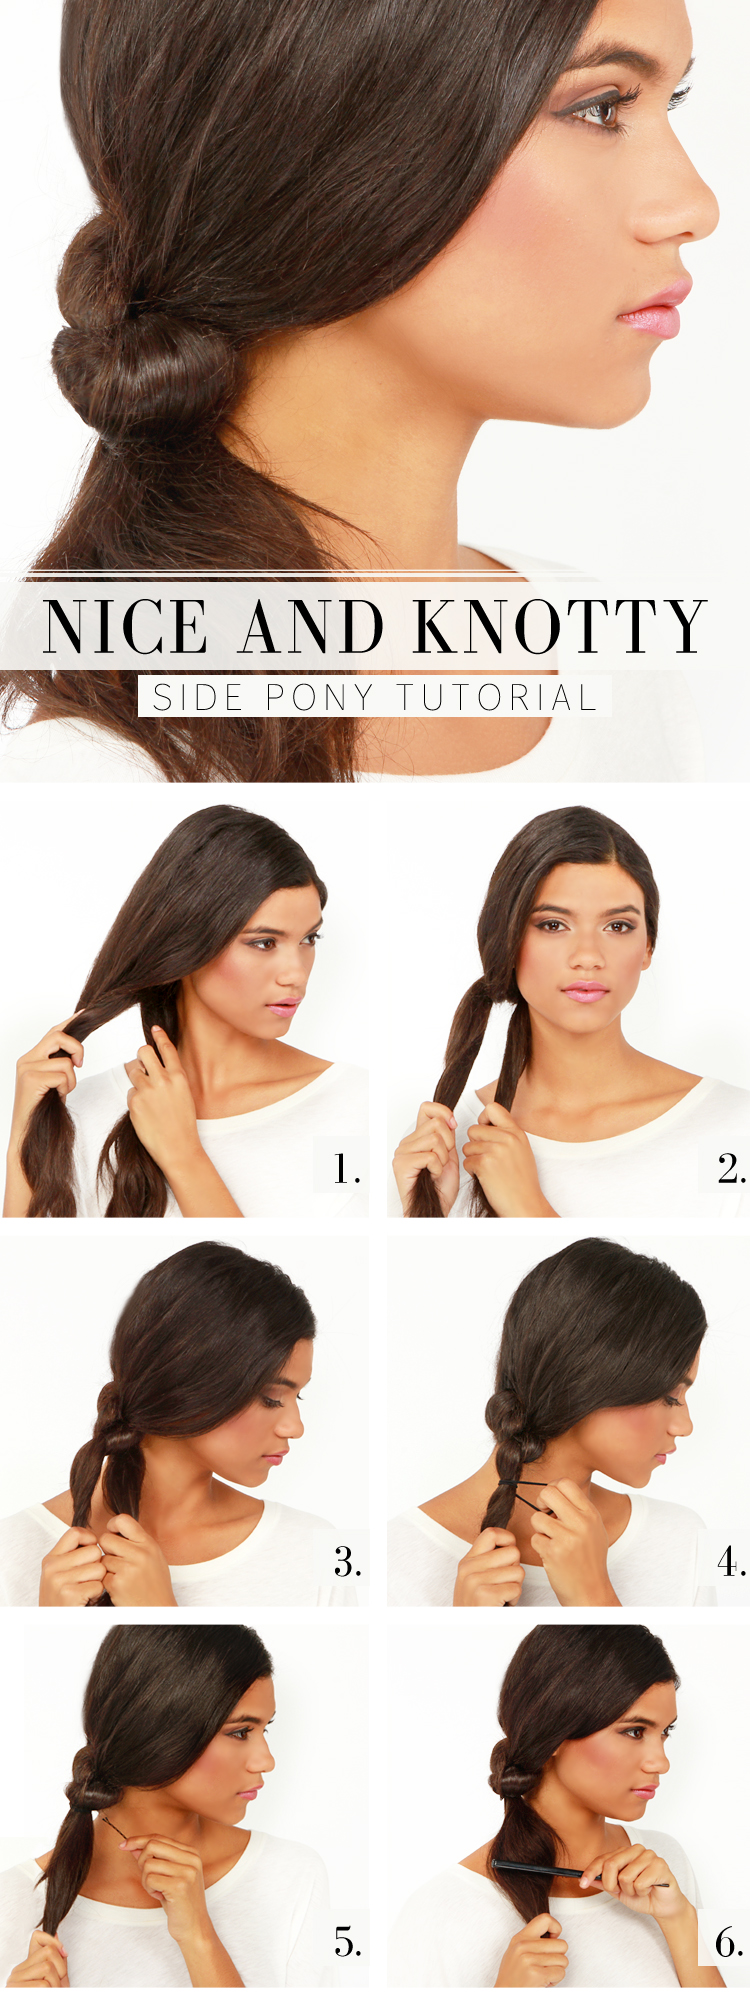 Sideways swept tutorial for knotty ponytail hairstyles